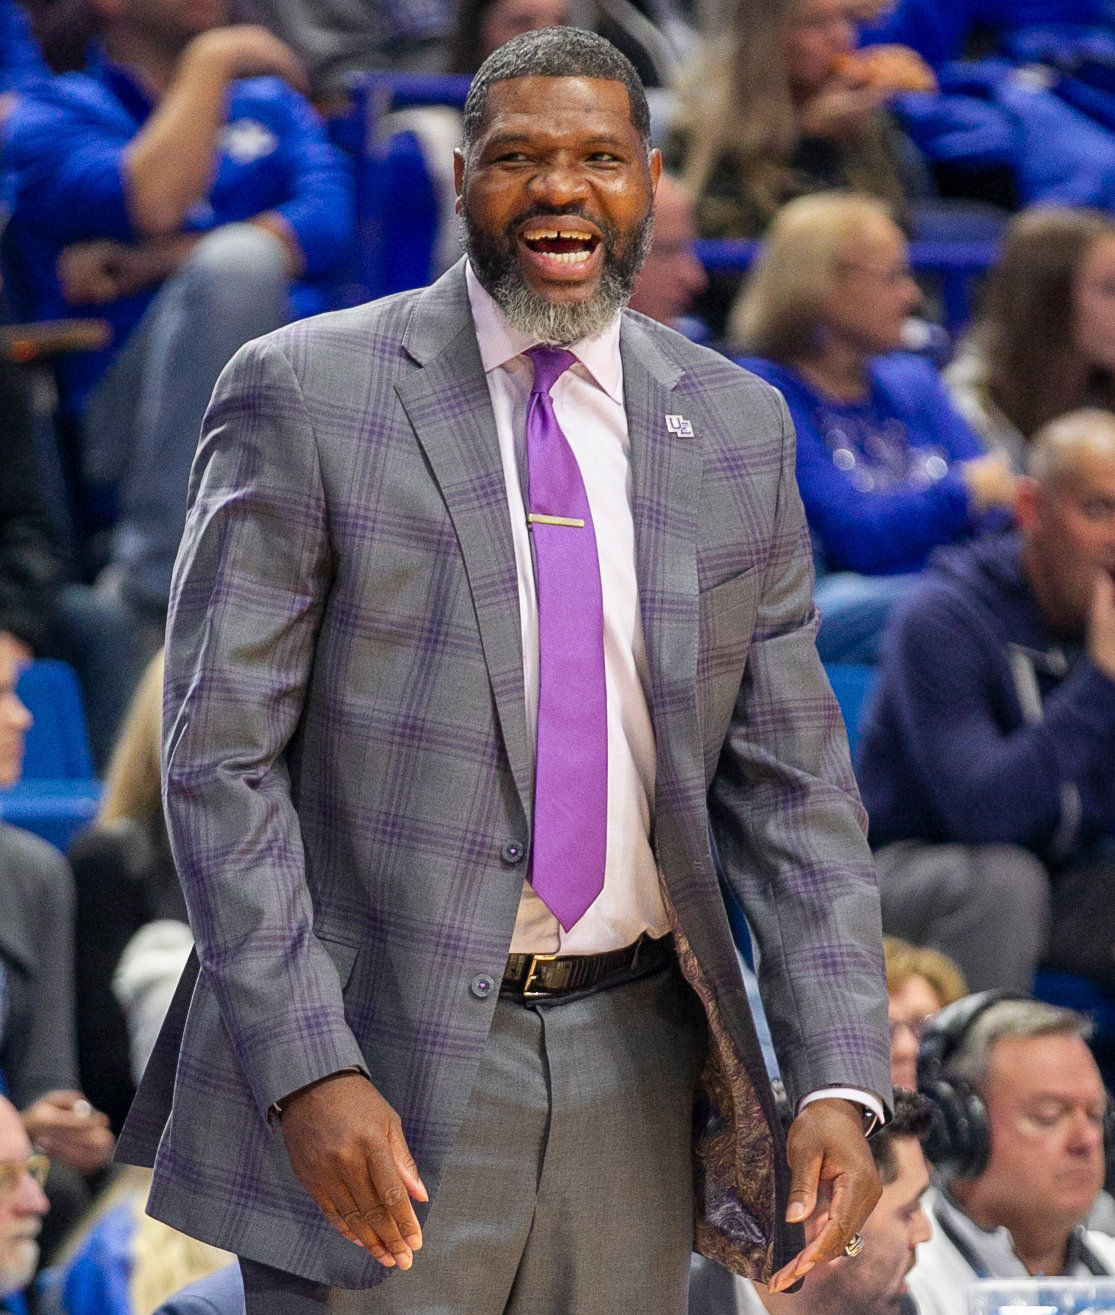 Former Kentucky standout Walter McCarty led his Evansville Purple Aces to a 67-64 win over No. 1 Kentucky Tuesday night at Rupp Arena. (Kentucky Today/Tammie Brown)